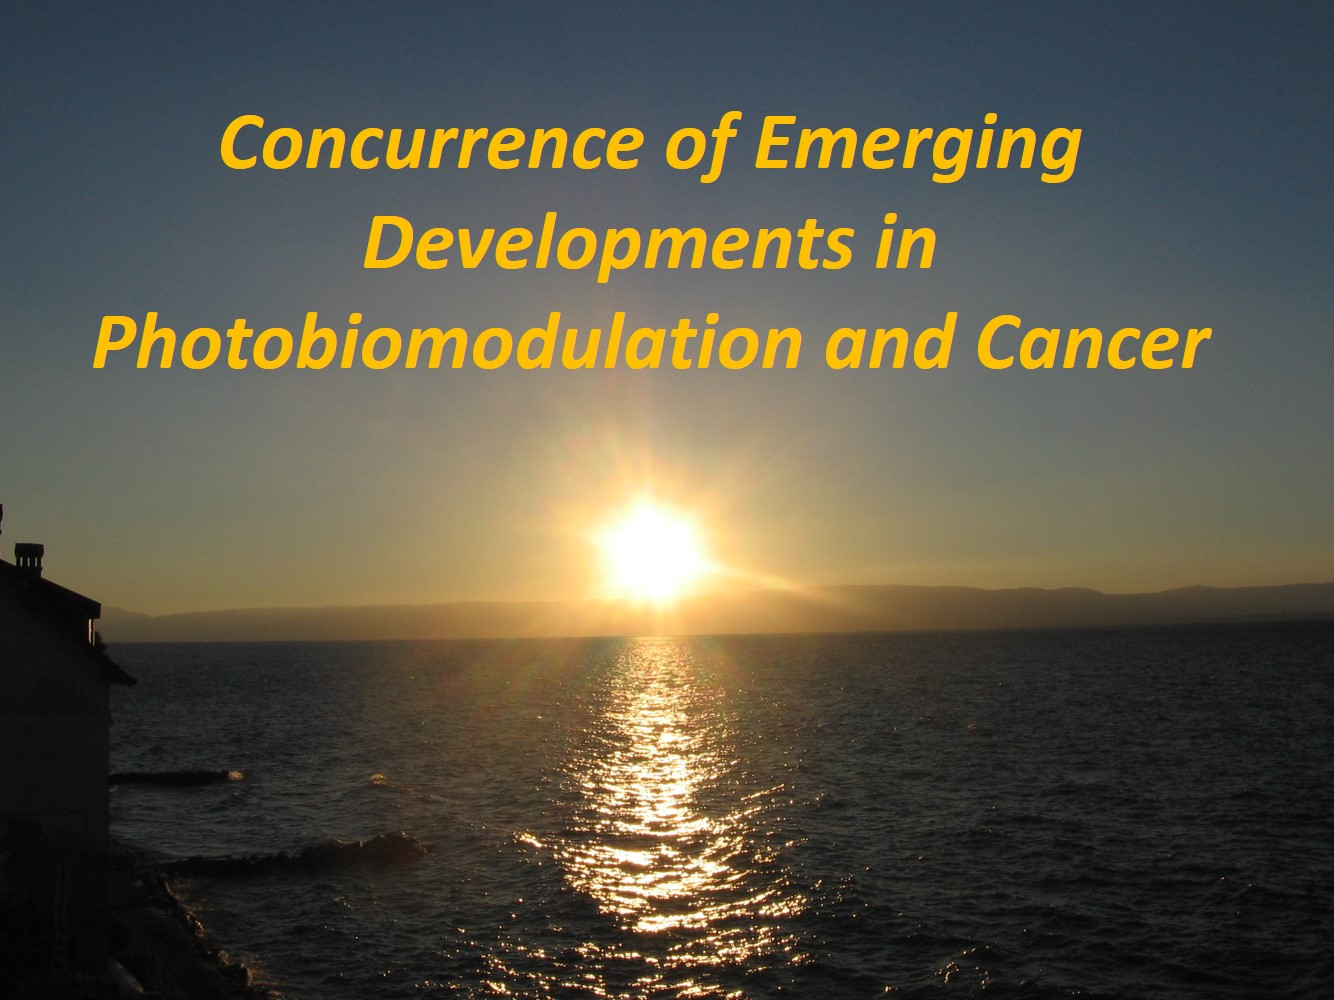 Conccurence of Emerging